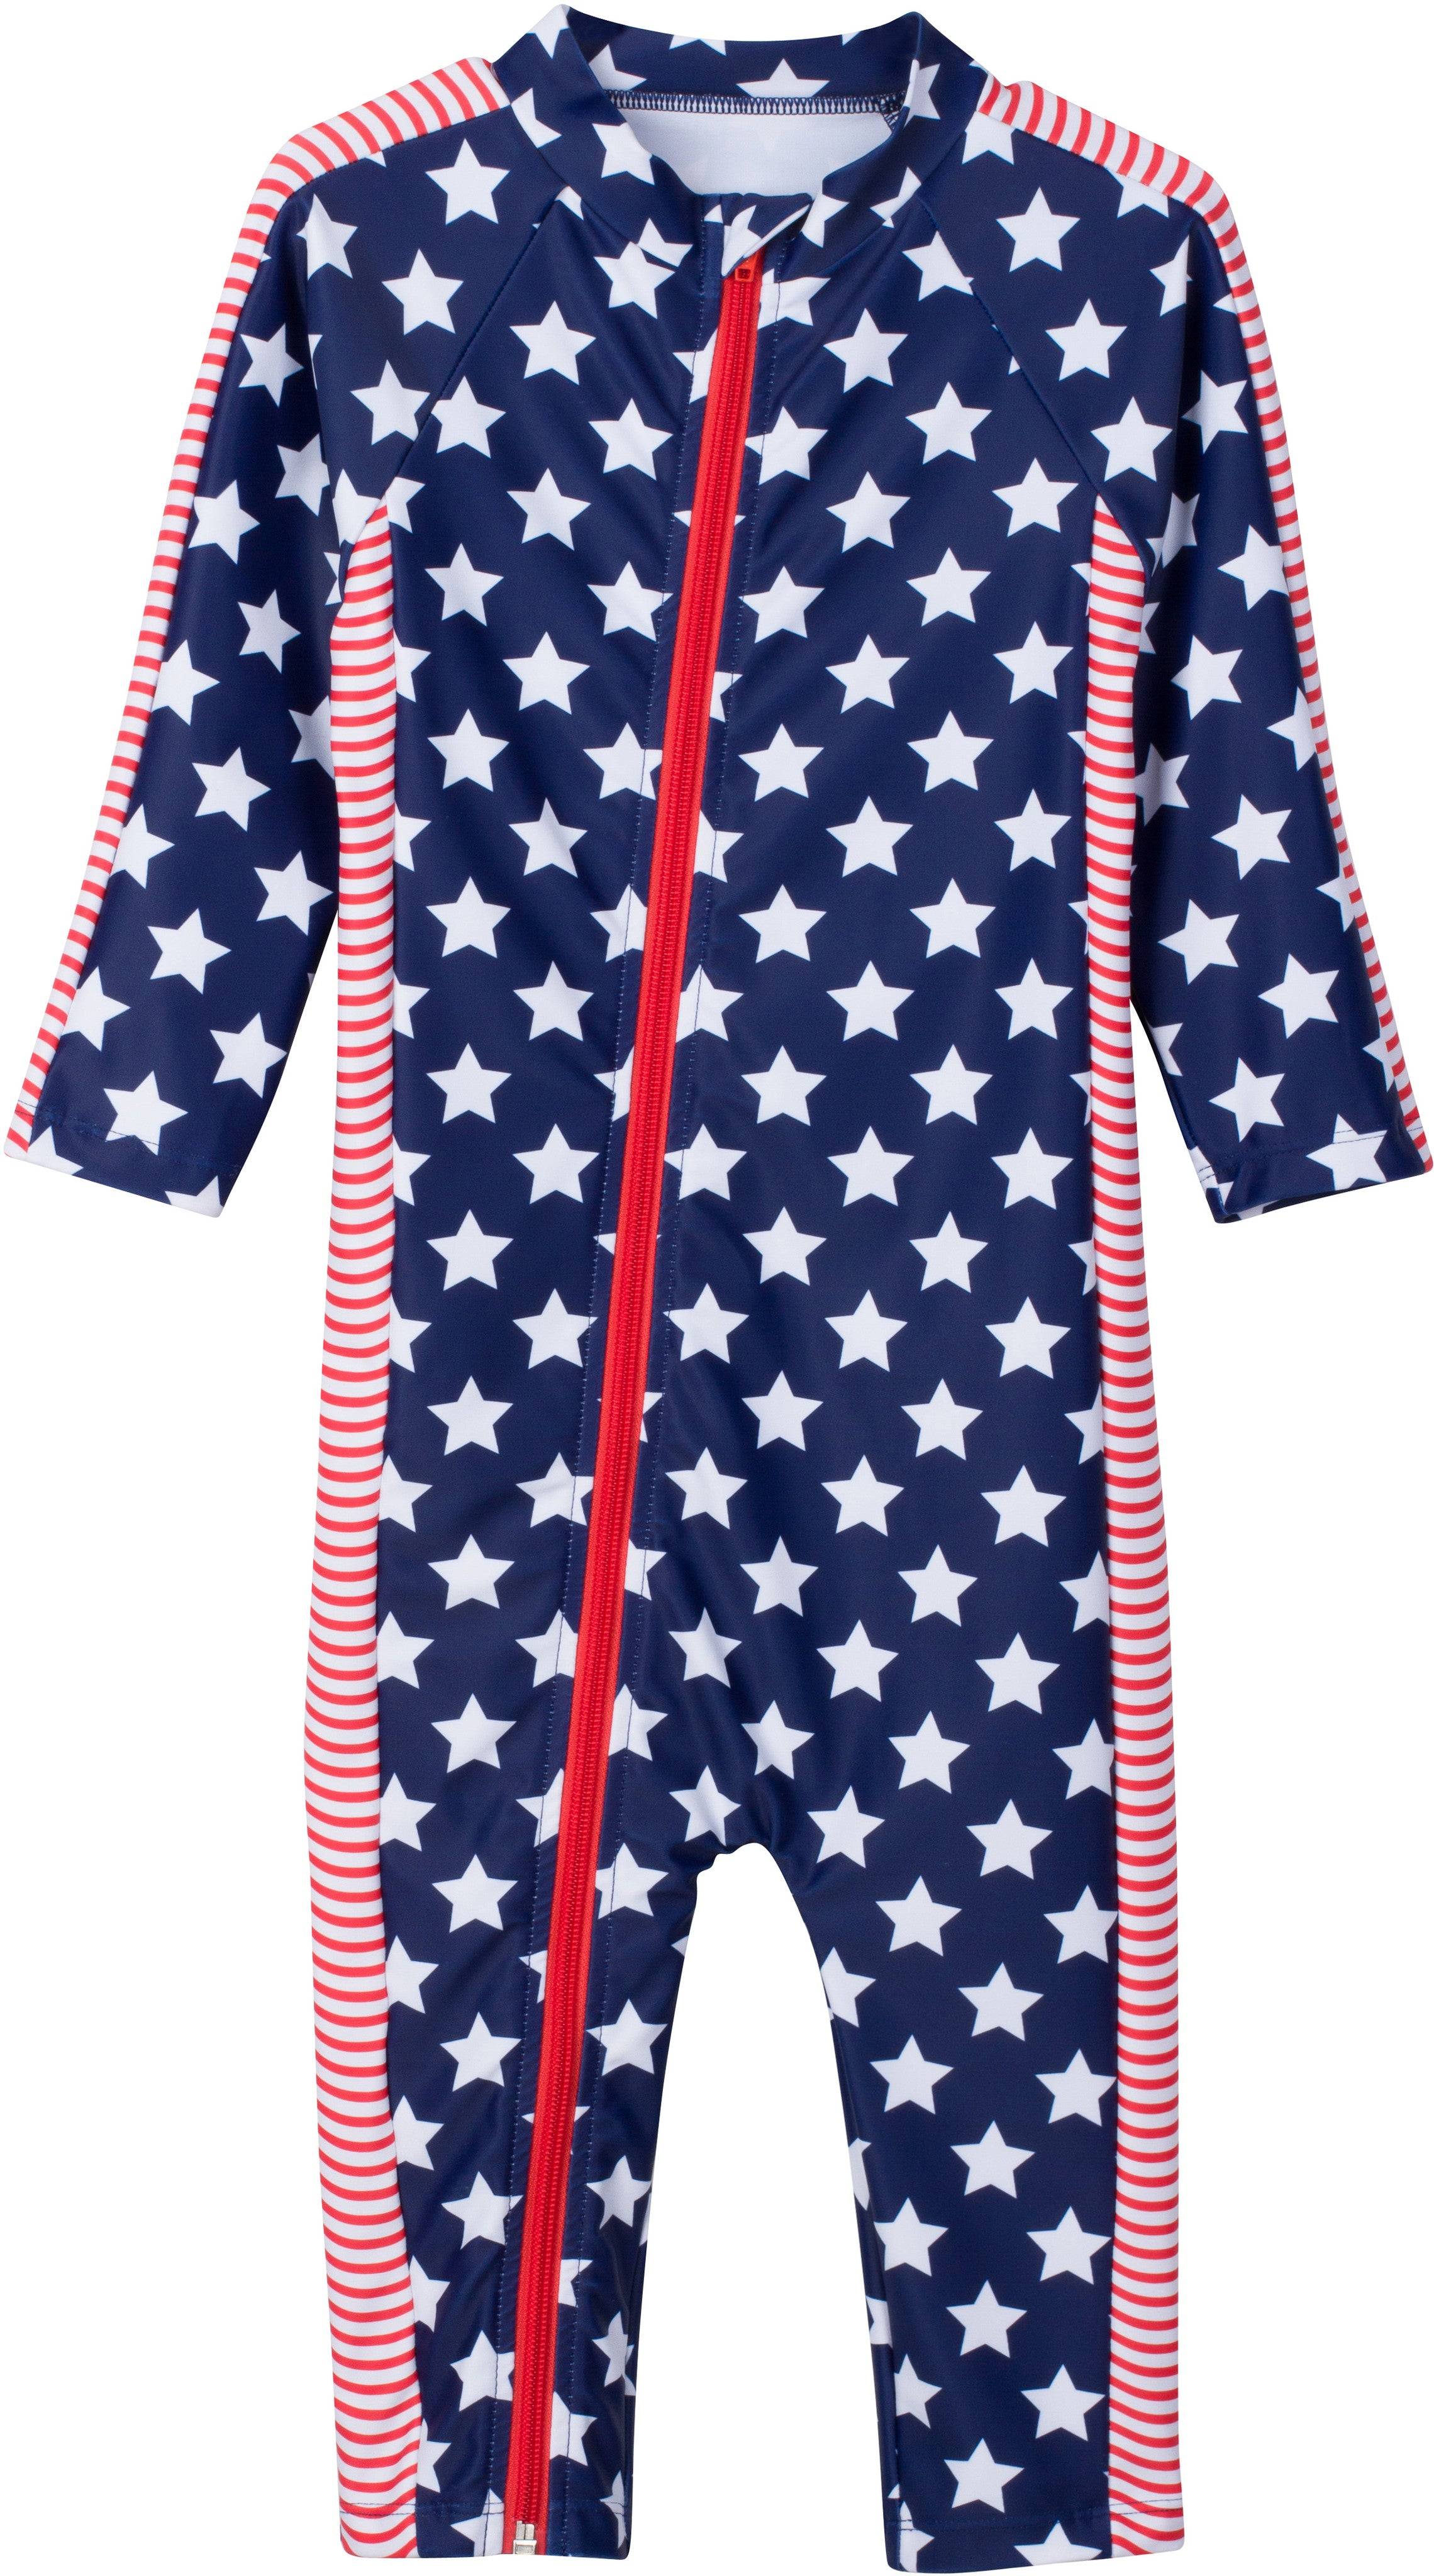 "Long Sleeve Romper with UPF 50+ UV Sun Protection - "" July 4th Fun"""